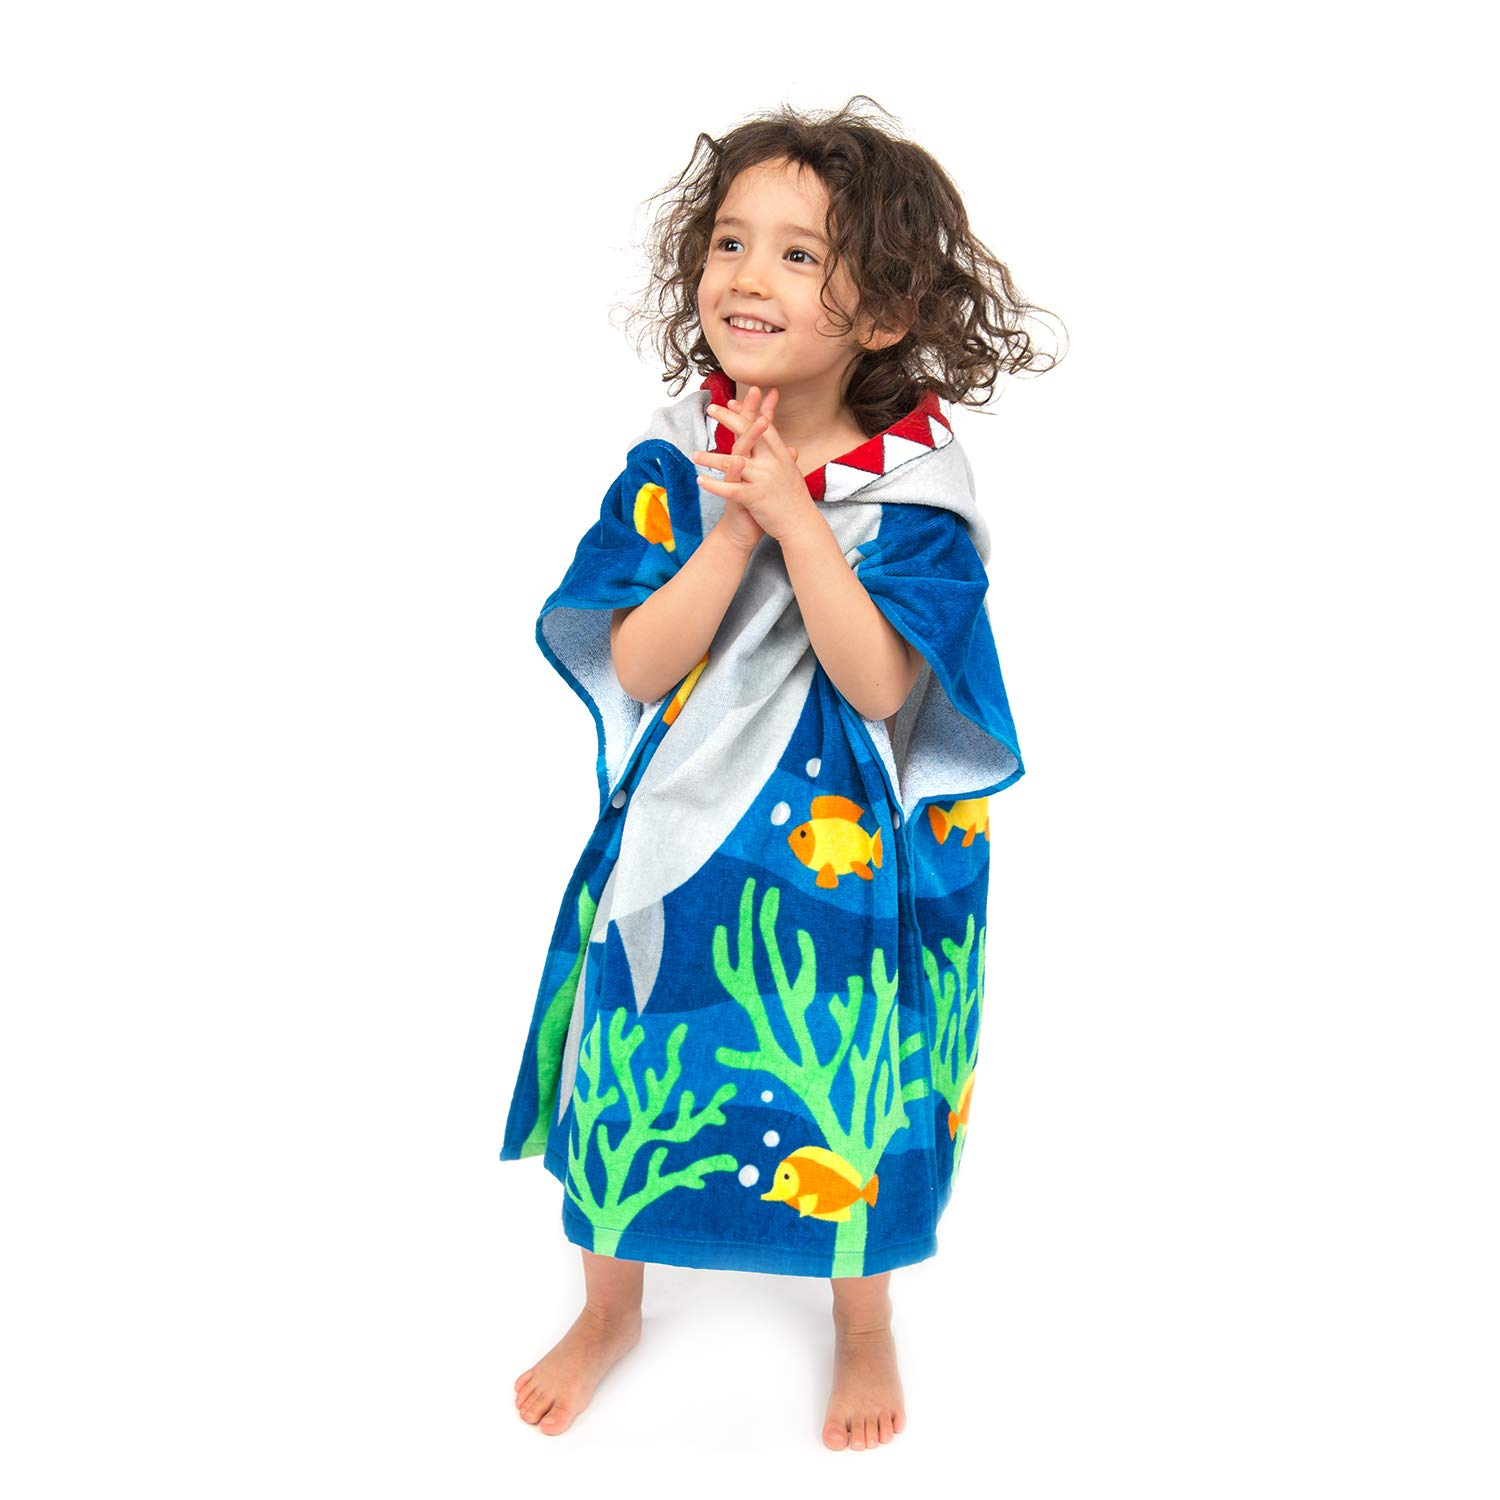 ZINGLIFE Hooded Towels for Kids Baby Boys Girls Toddlers Child Poncho Bath Towel for Beach Pool 100% Cotton Ultra Breathable Soft Enough Thick for Winter Size 24'' x 47''(Brave Shark) by ZINGLIFE (Image #3)